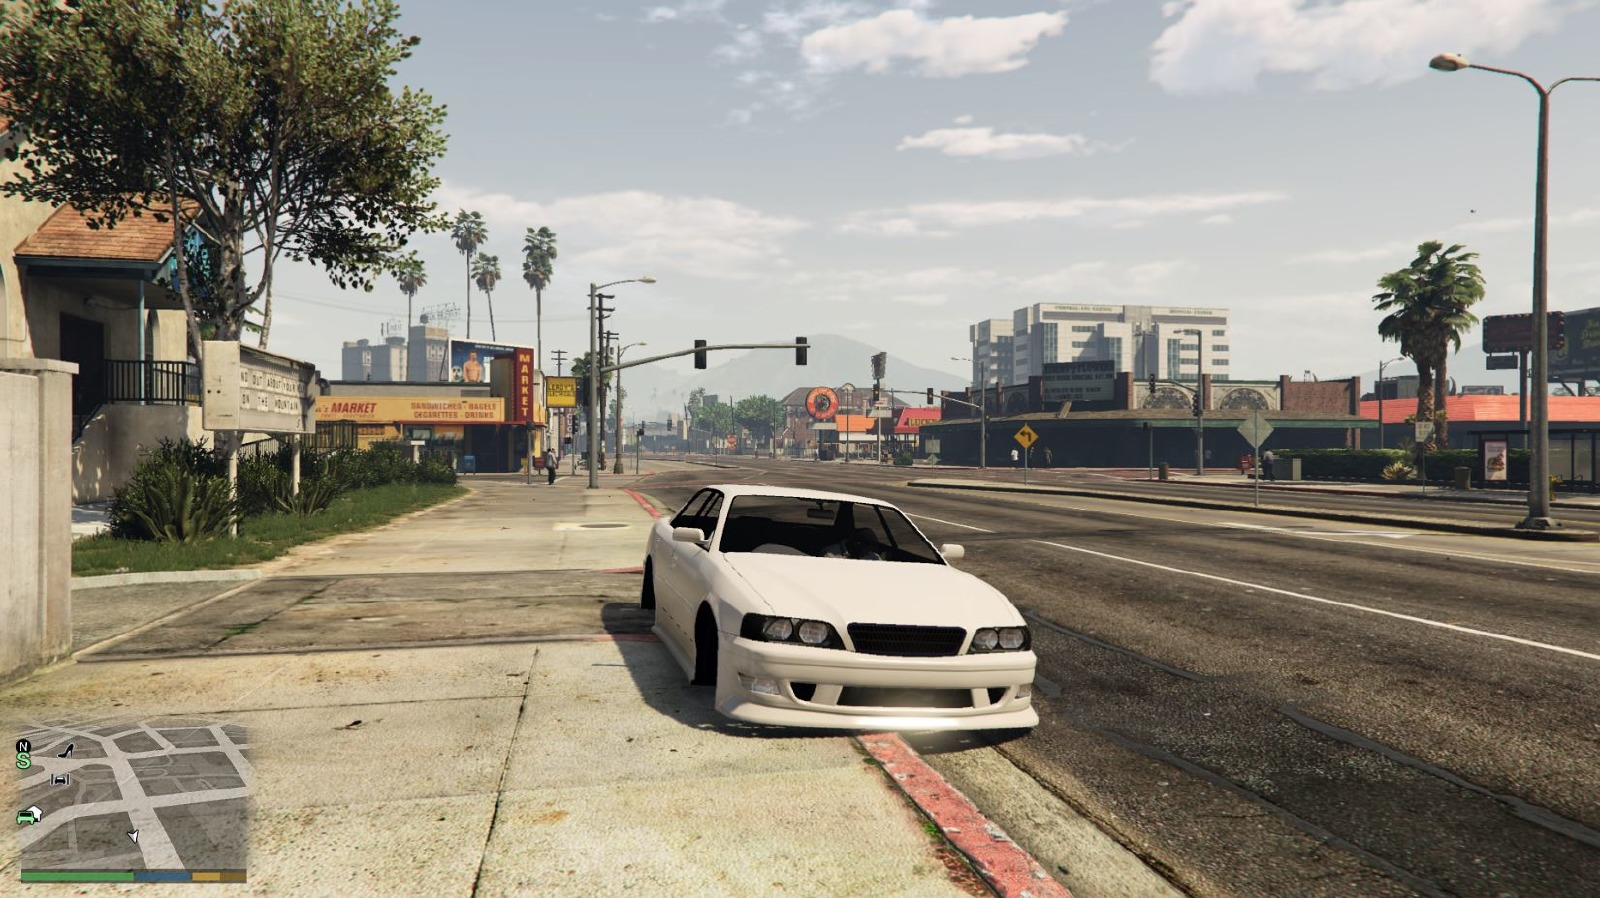 toyota chaser 1999 vehicules pour gta v sur gta modding. Black Bedroom Furniture Sets. Home Design Ideas